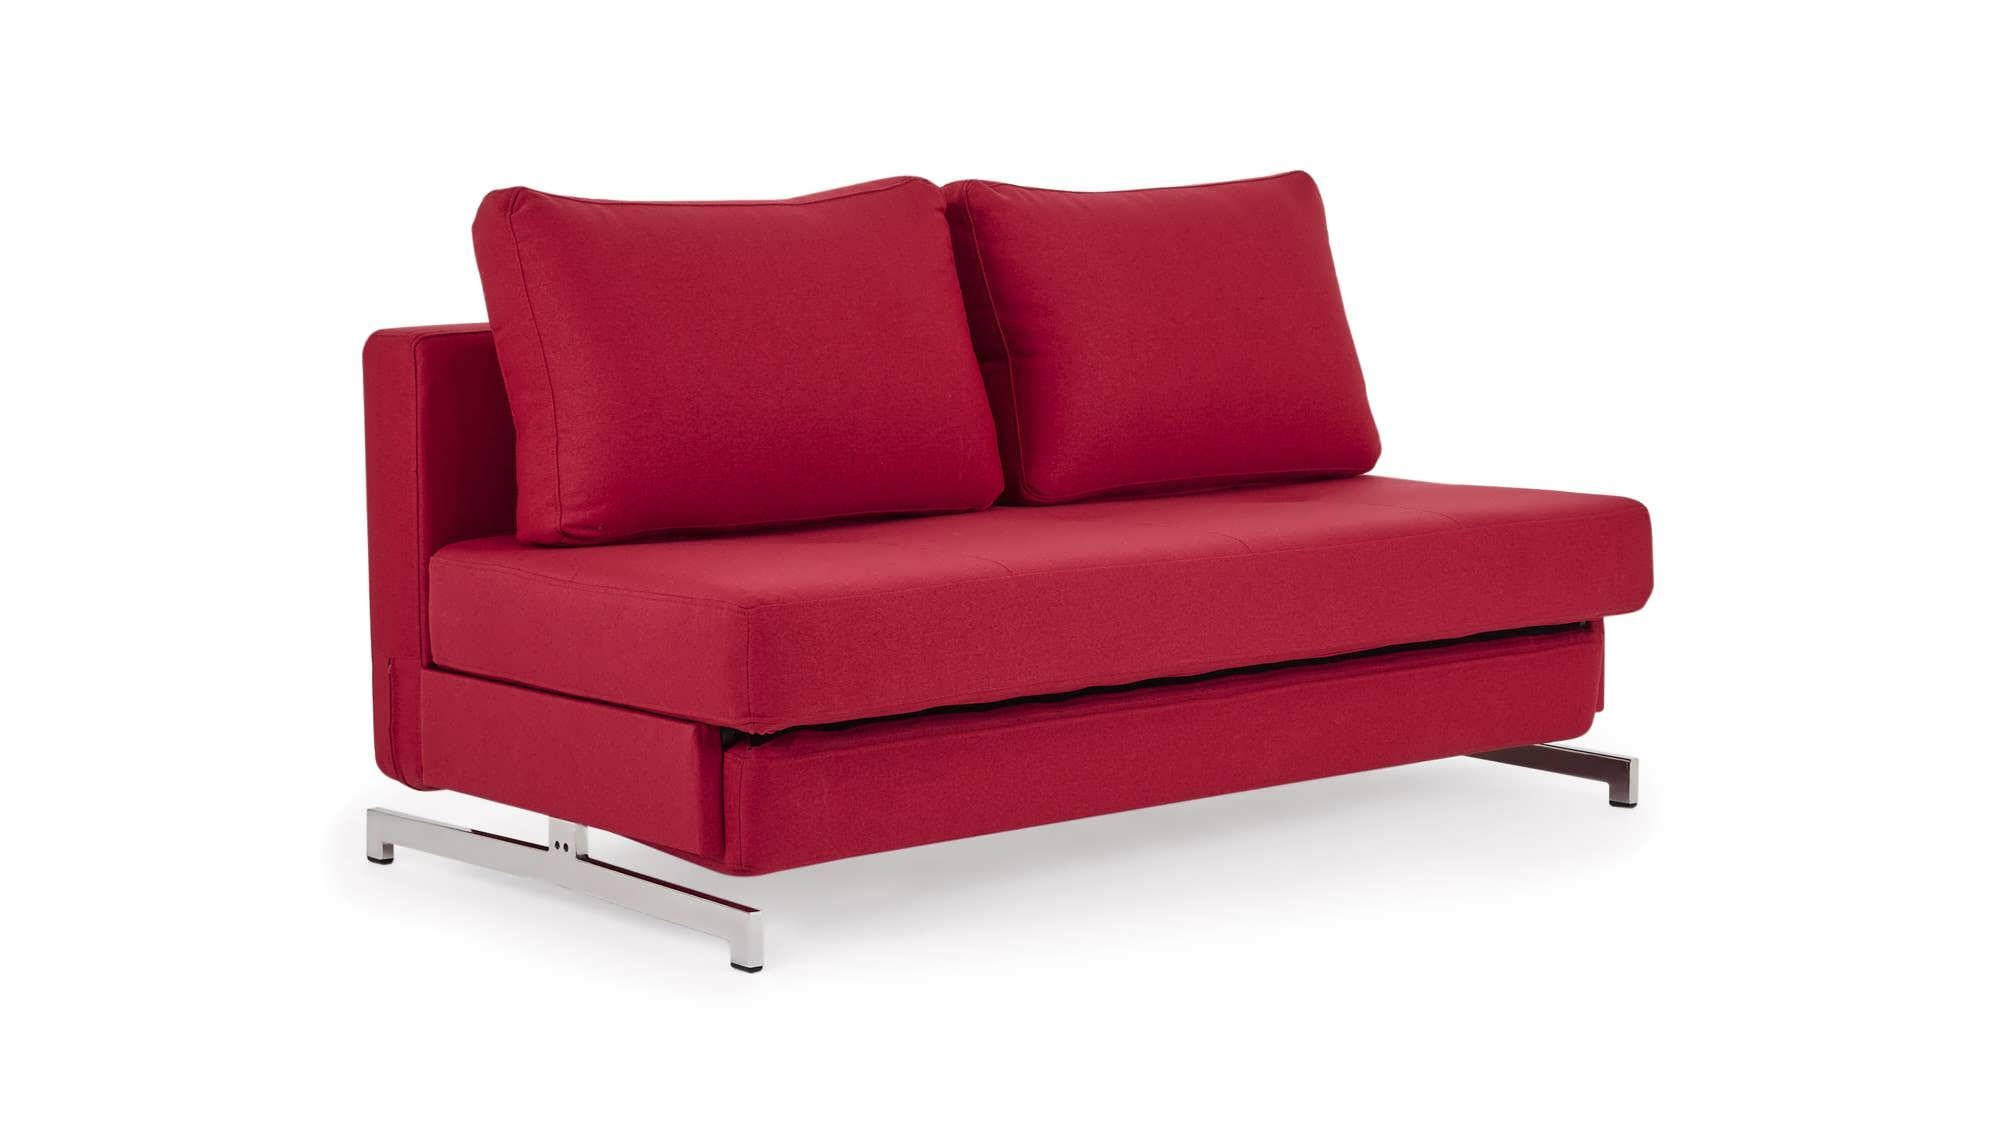 Sofa : Modern Sofa Small Sectional Sofa Loveseat Sleeper Cheap regarding Modern Small Sectional Sofas (Image 14 of 15)